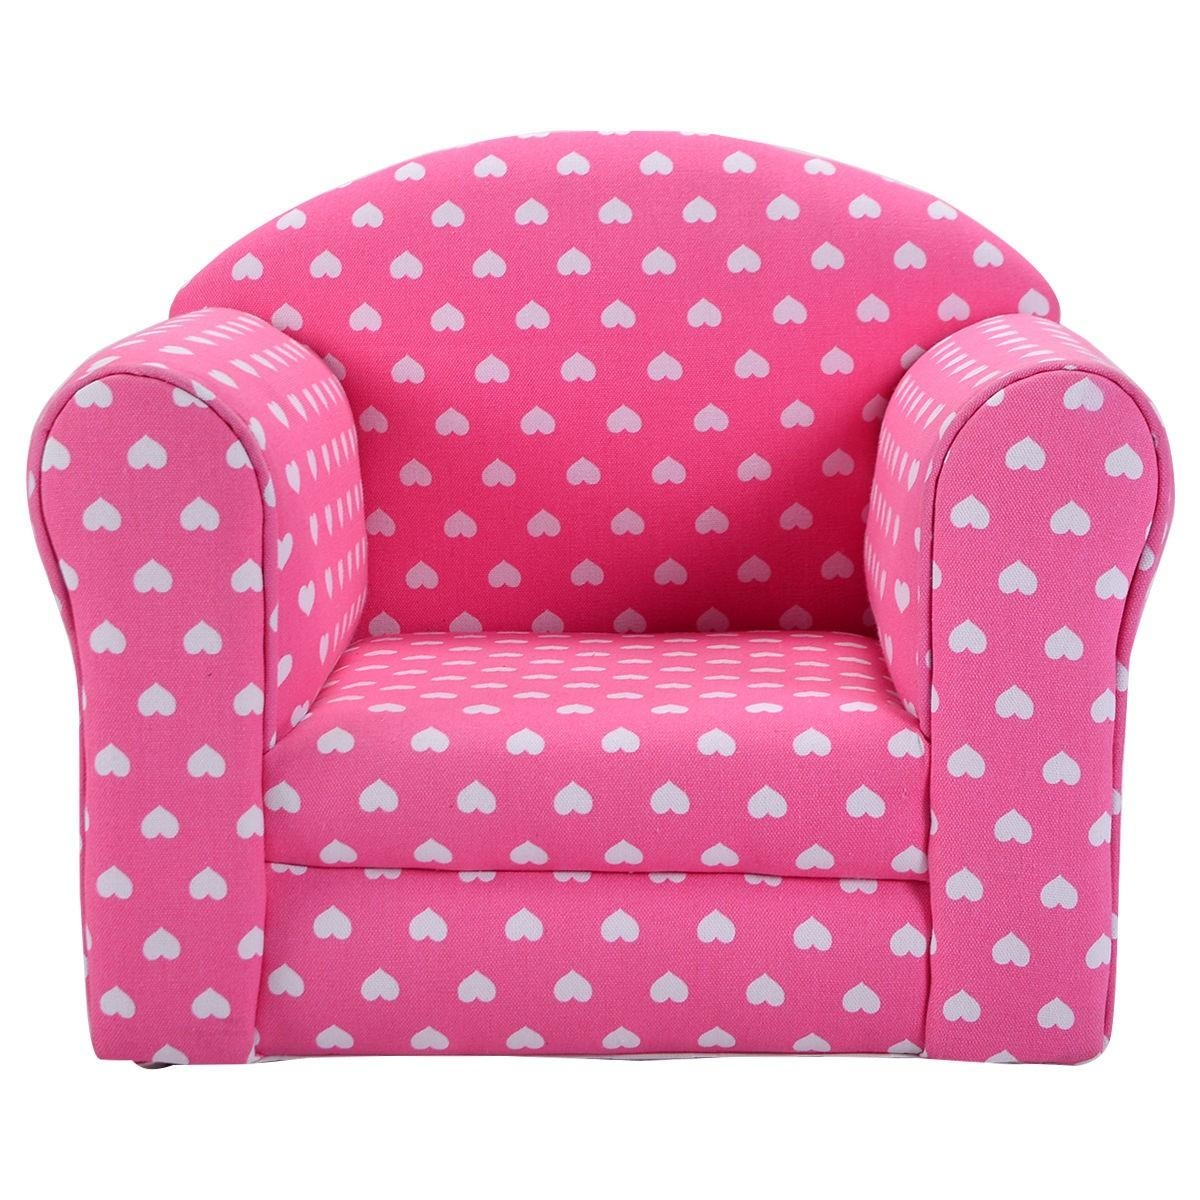 Sofas Center : Sofa Chair For Toddler Thesofa Kid Best Decoration Inside Toddler Sofa Chairs (View 9 of 20)